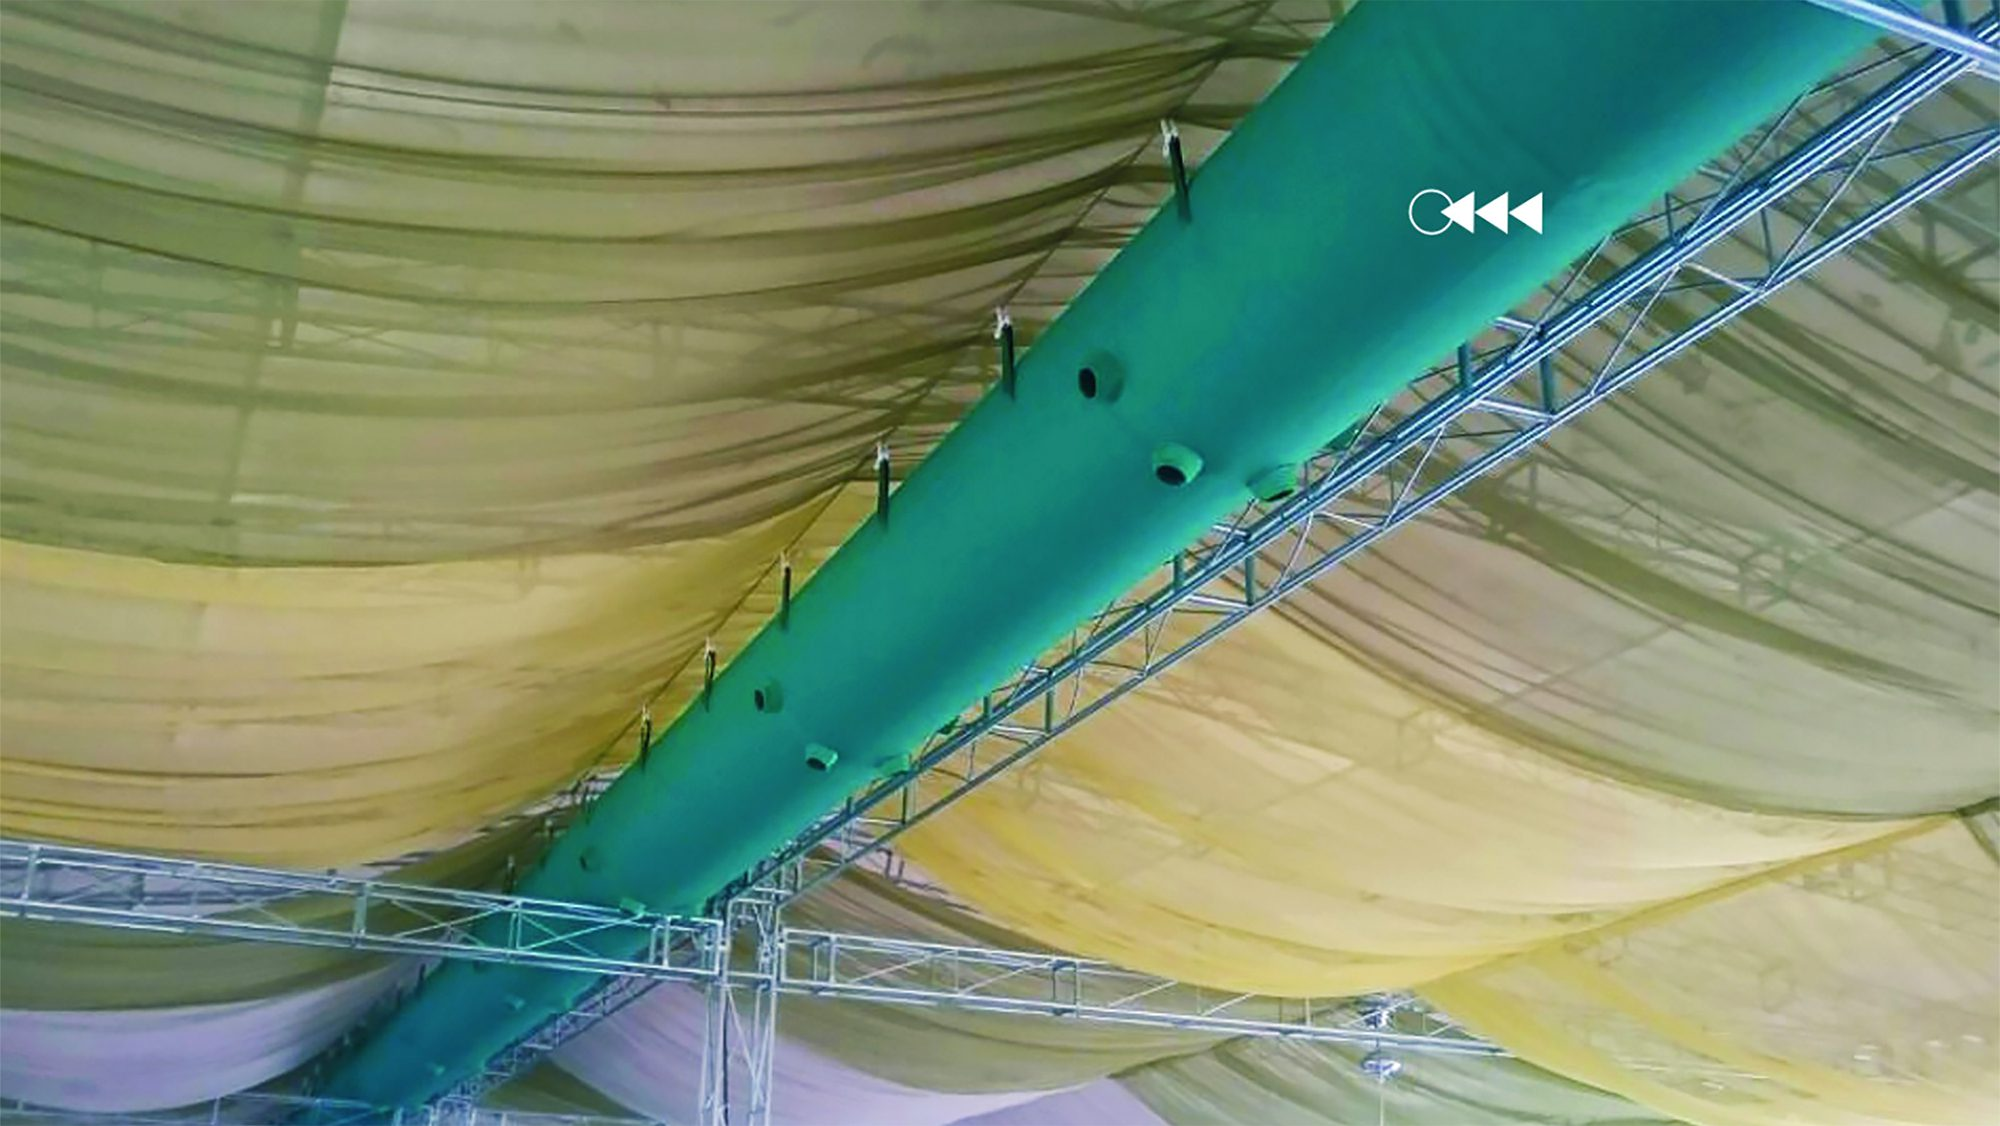 turquoise fabric ducts in a marquee